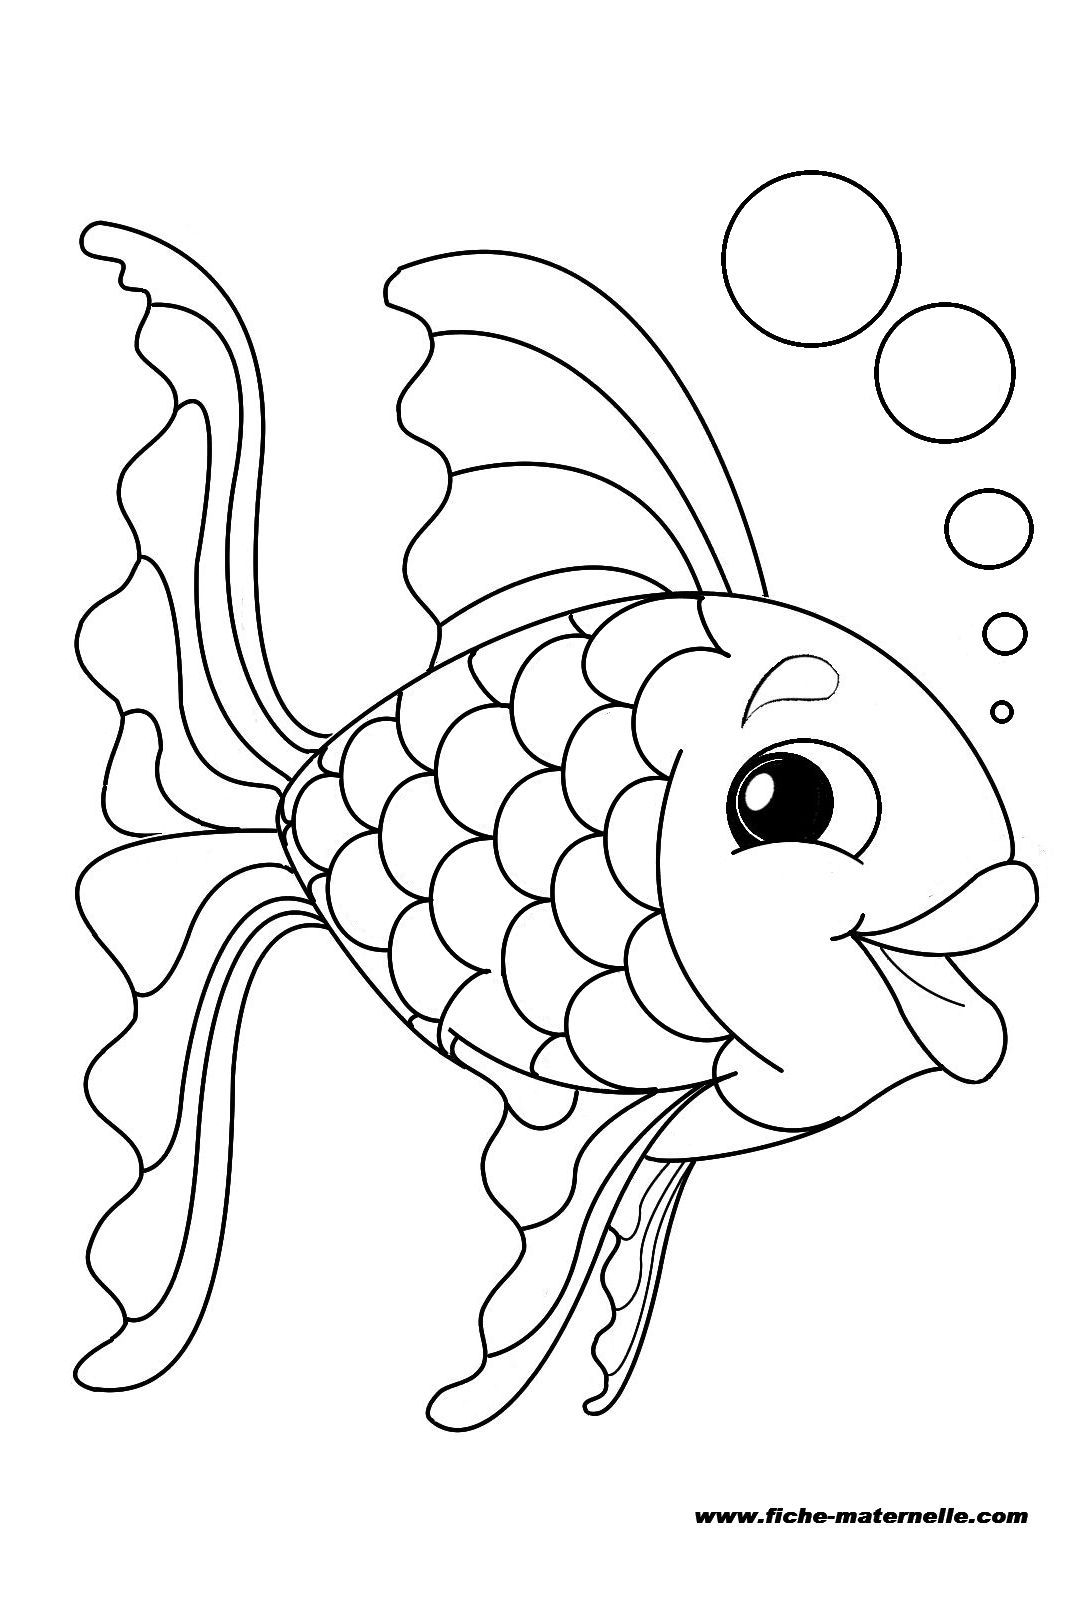 Coloriage : Un Poisson | Coloriage Poisson, Coloriage à Poisson D Avril Coloriage A Imprimer